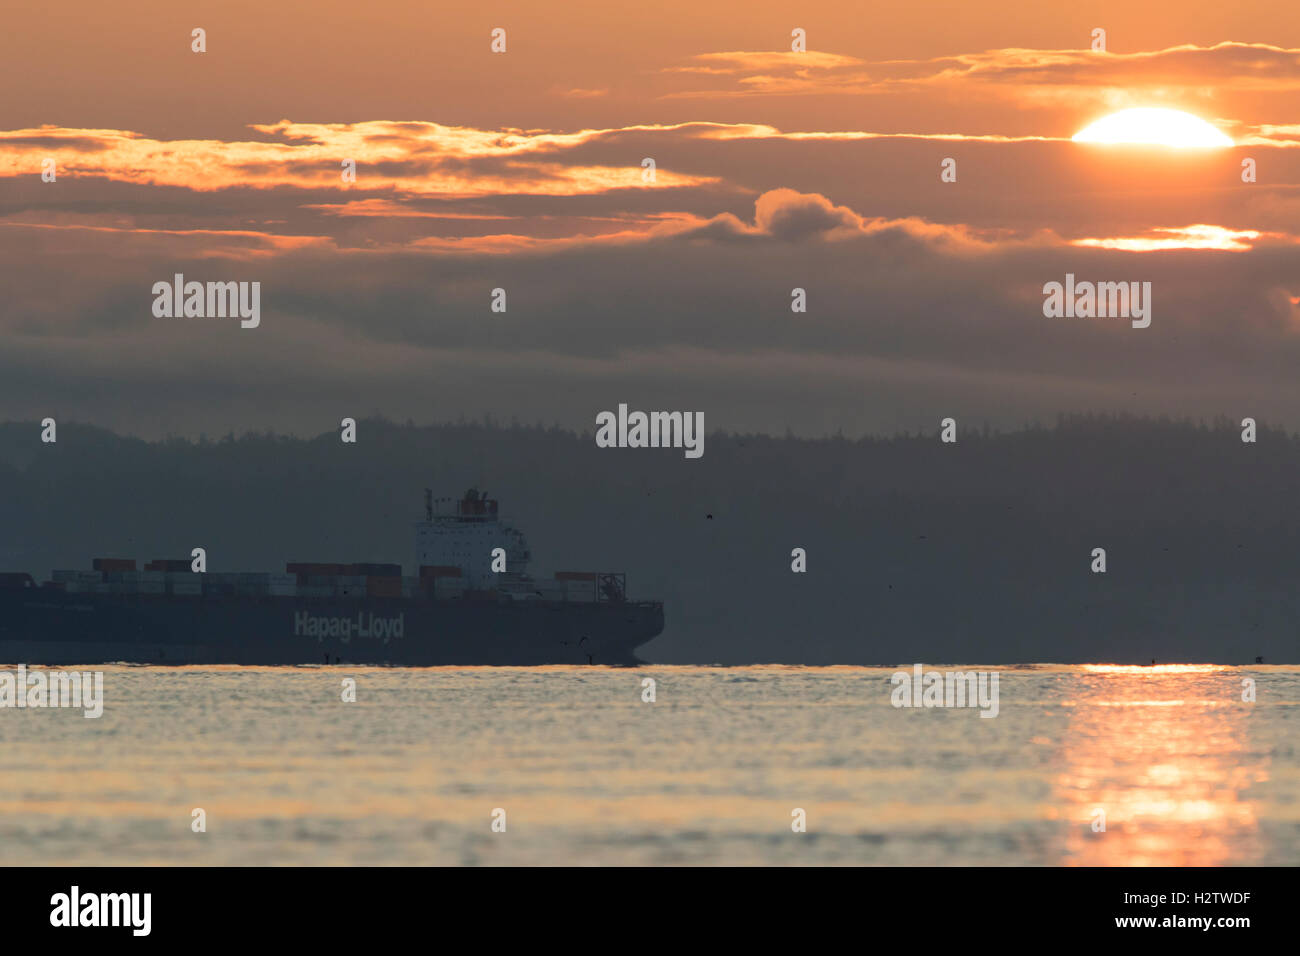 Puget Sound at sunrise with container ship. - Stock Image